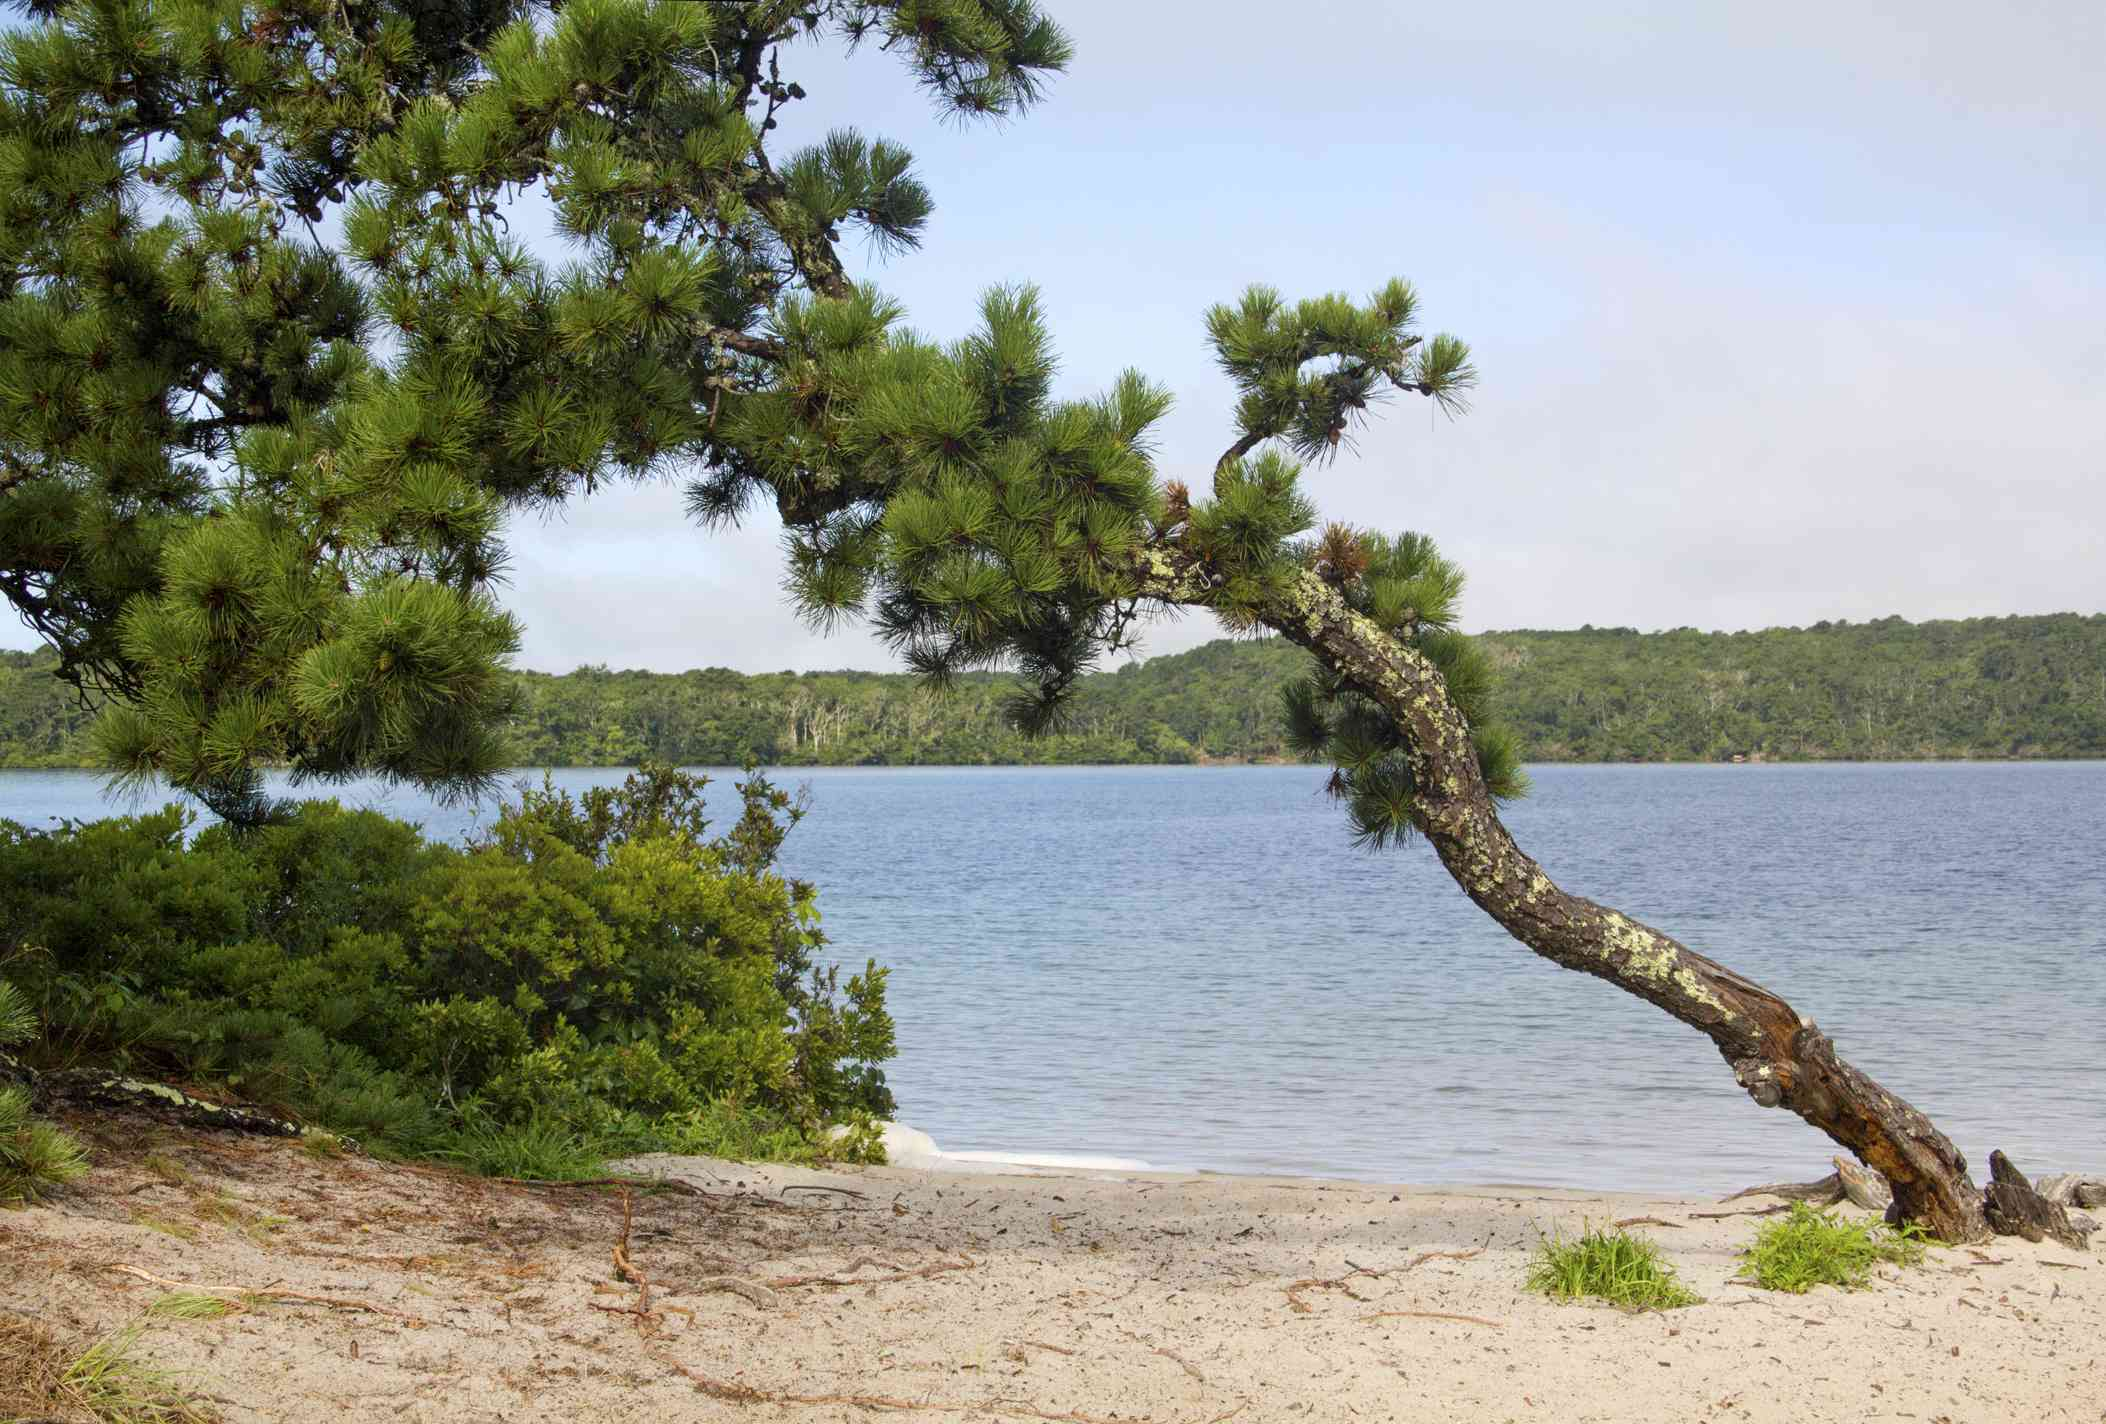 Cliff Pond in Nickerson State Park on Cape Cod.